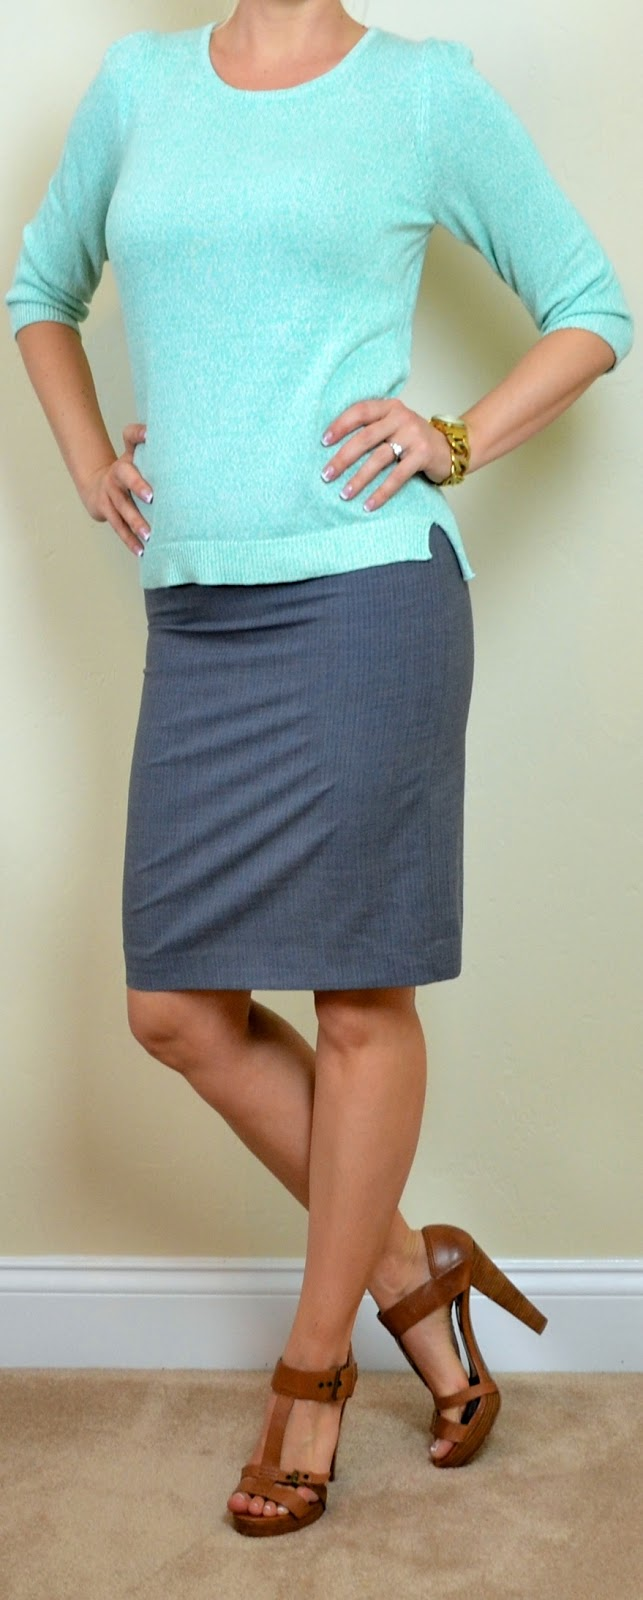 ↓ 24 – Mint Green Pencil Skirt. Pencil skirts look sophisticated. A mint colored one outclasses all others. This skirt can be a sheer pencil skin or one that is of another material. A mint colored skirt suit with a white dress shirt would make for a different and voguish look. Via ↓ 10 – Colors to Wear with Mint Colored Skirt.